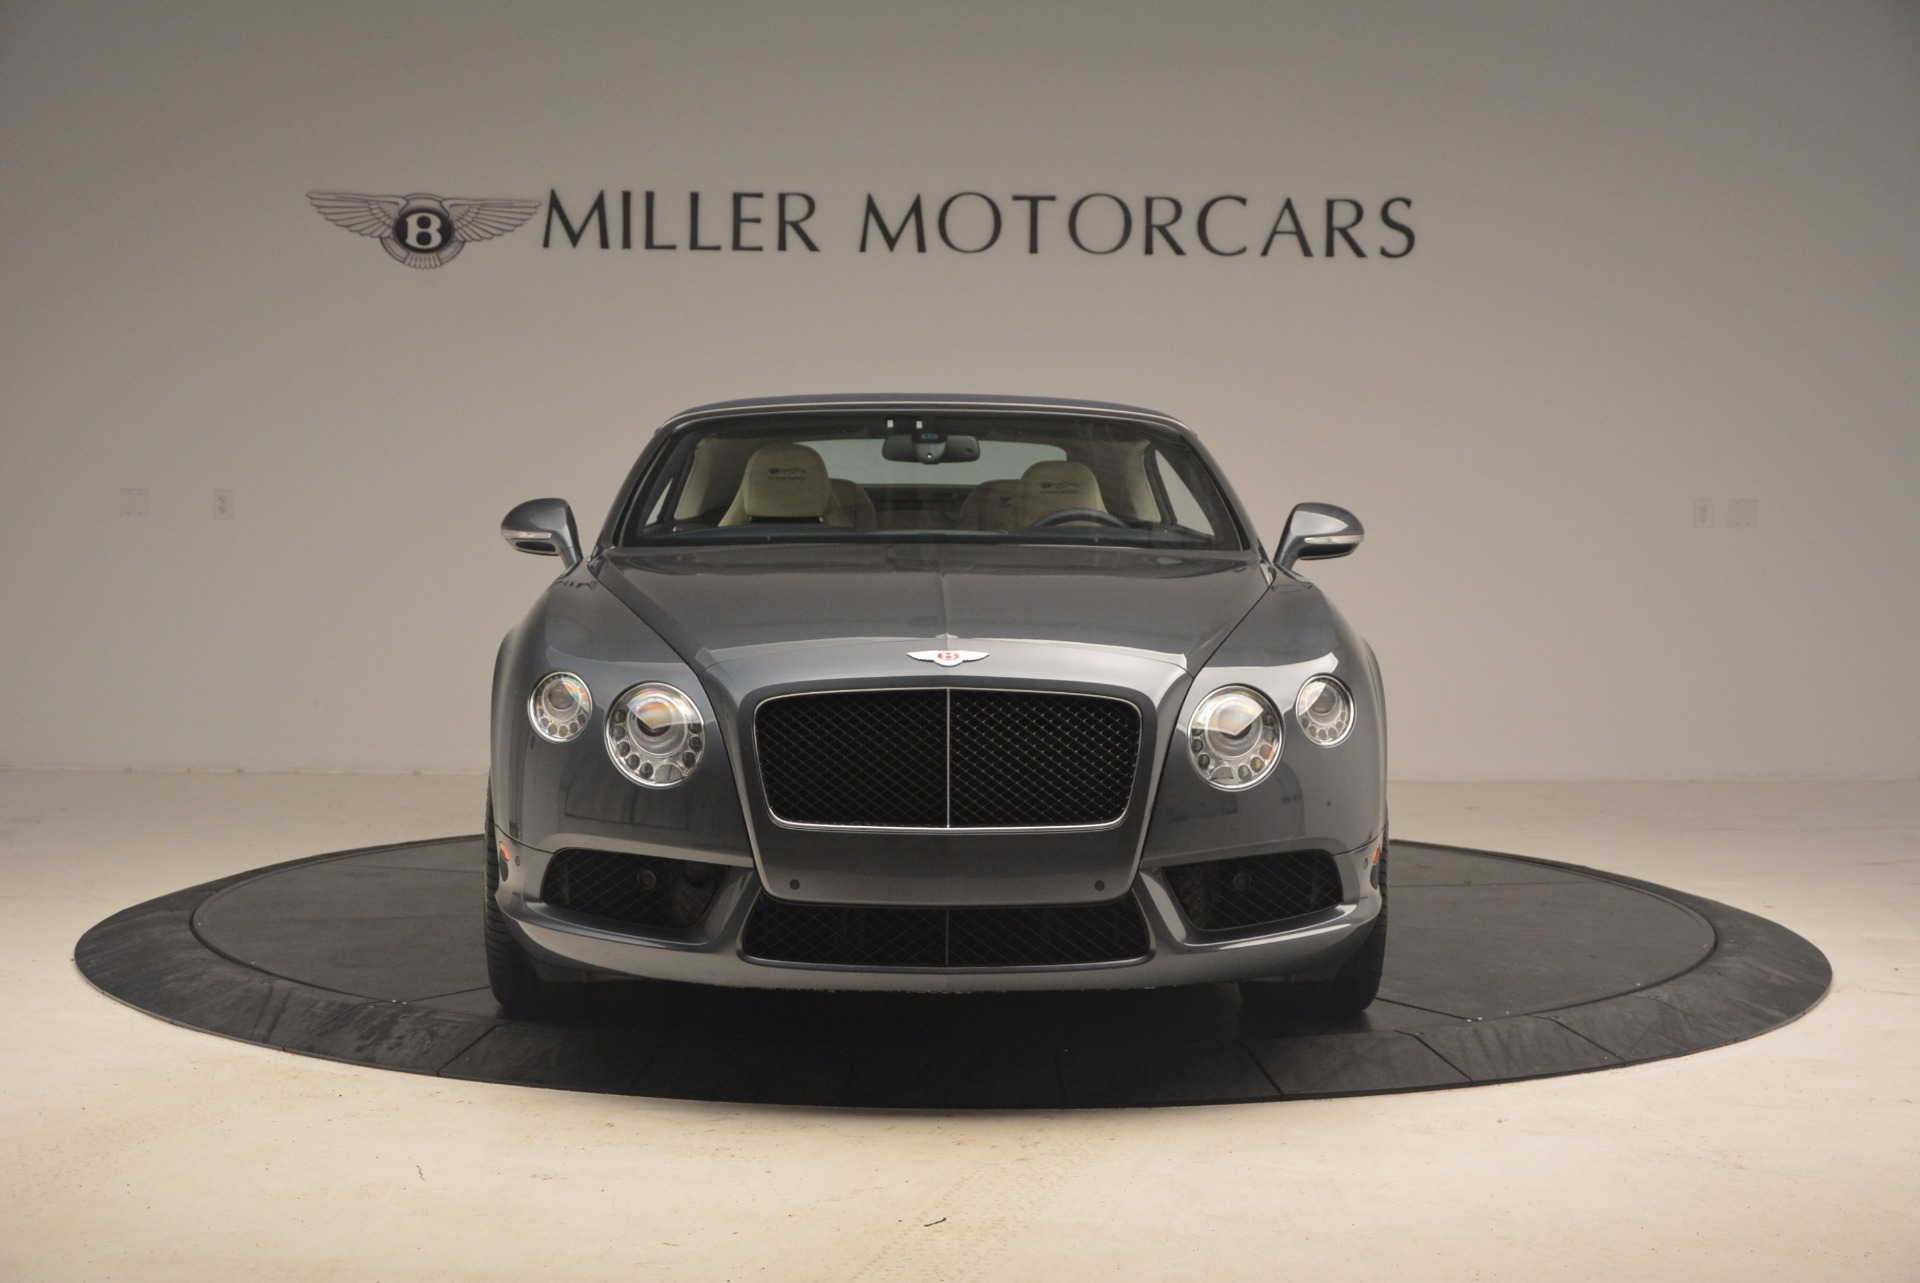 Used 2013 Bentley Continental GT V8 Le Mans Edition, 1 of 48 For Sale In Greenwich, CT 1288_p13